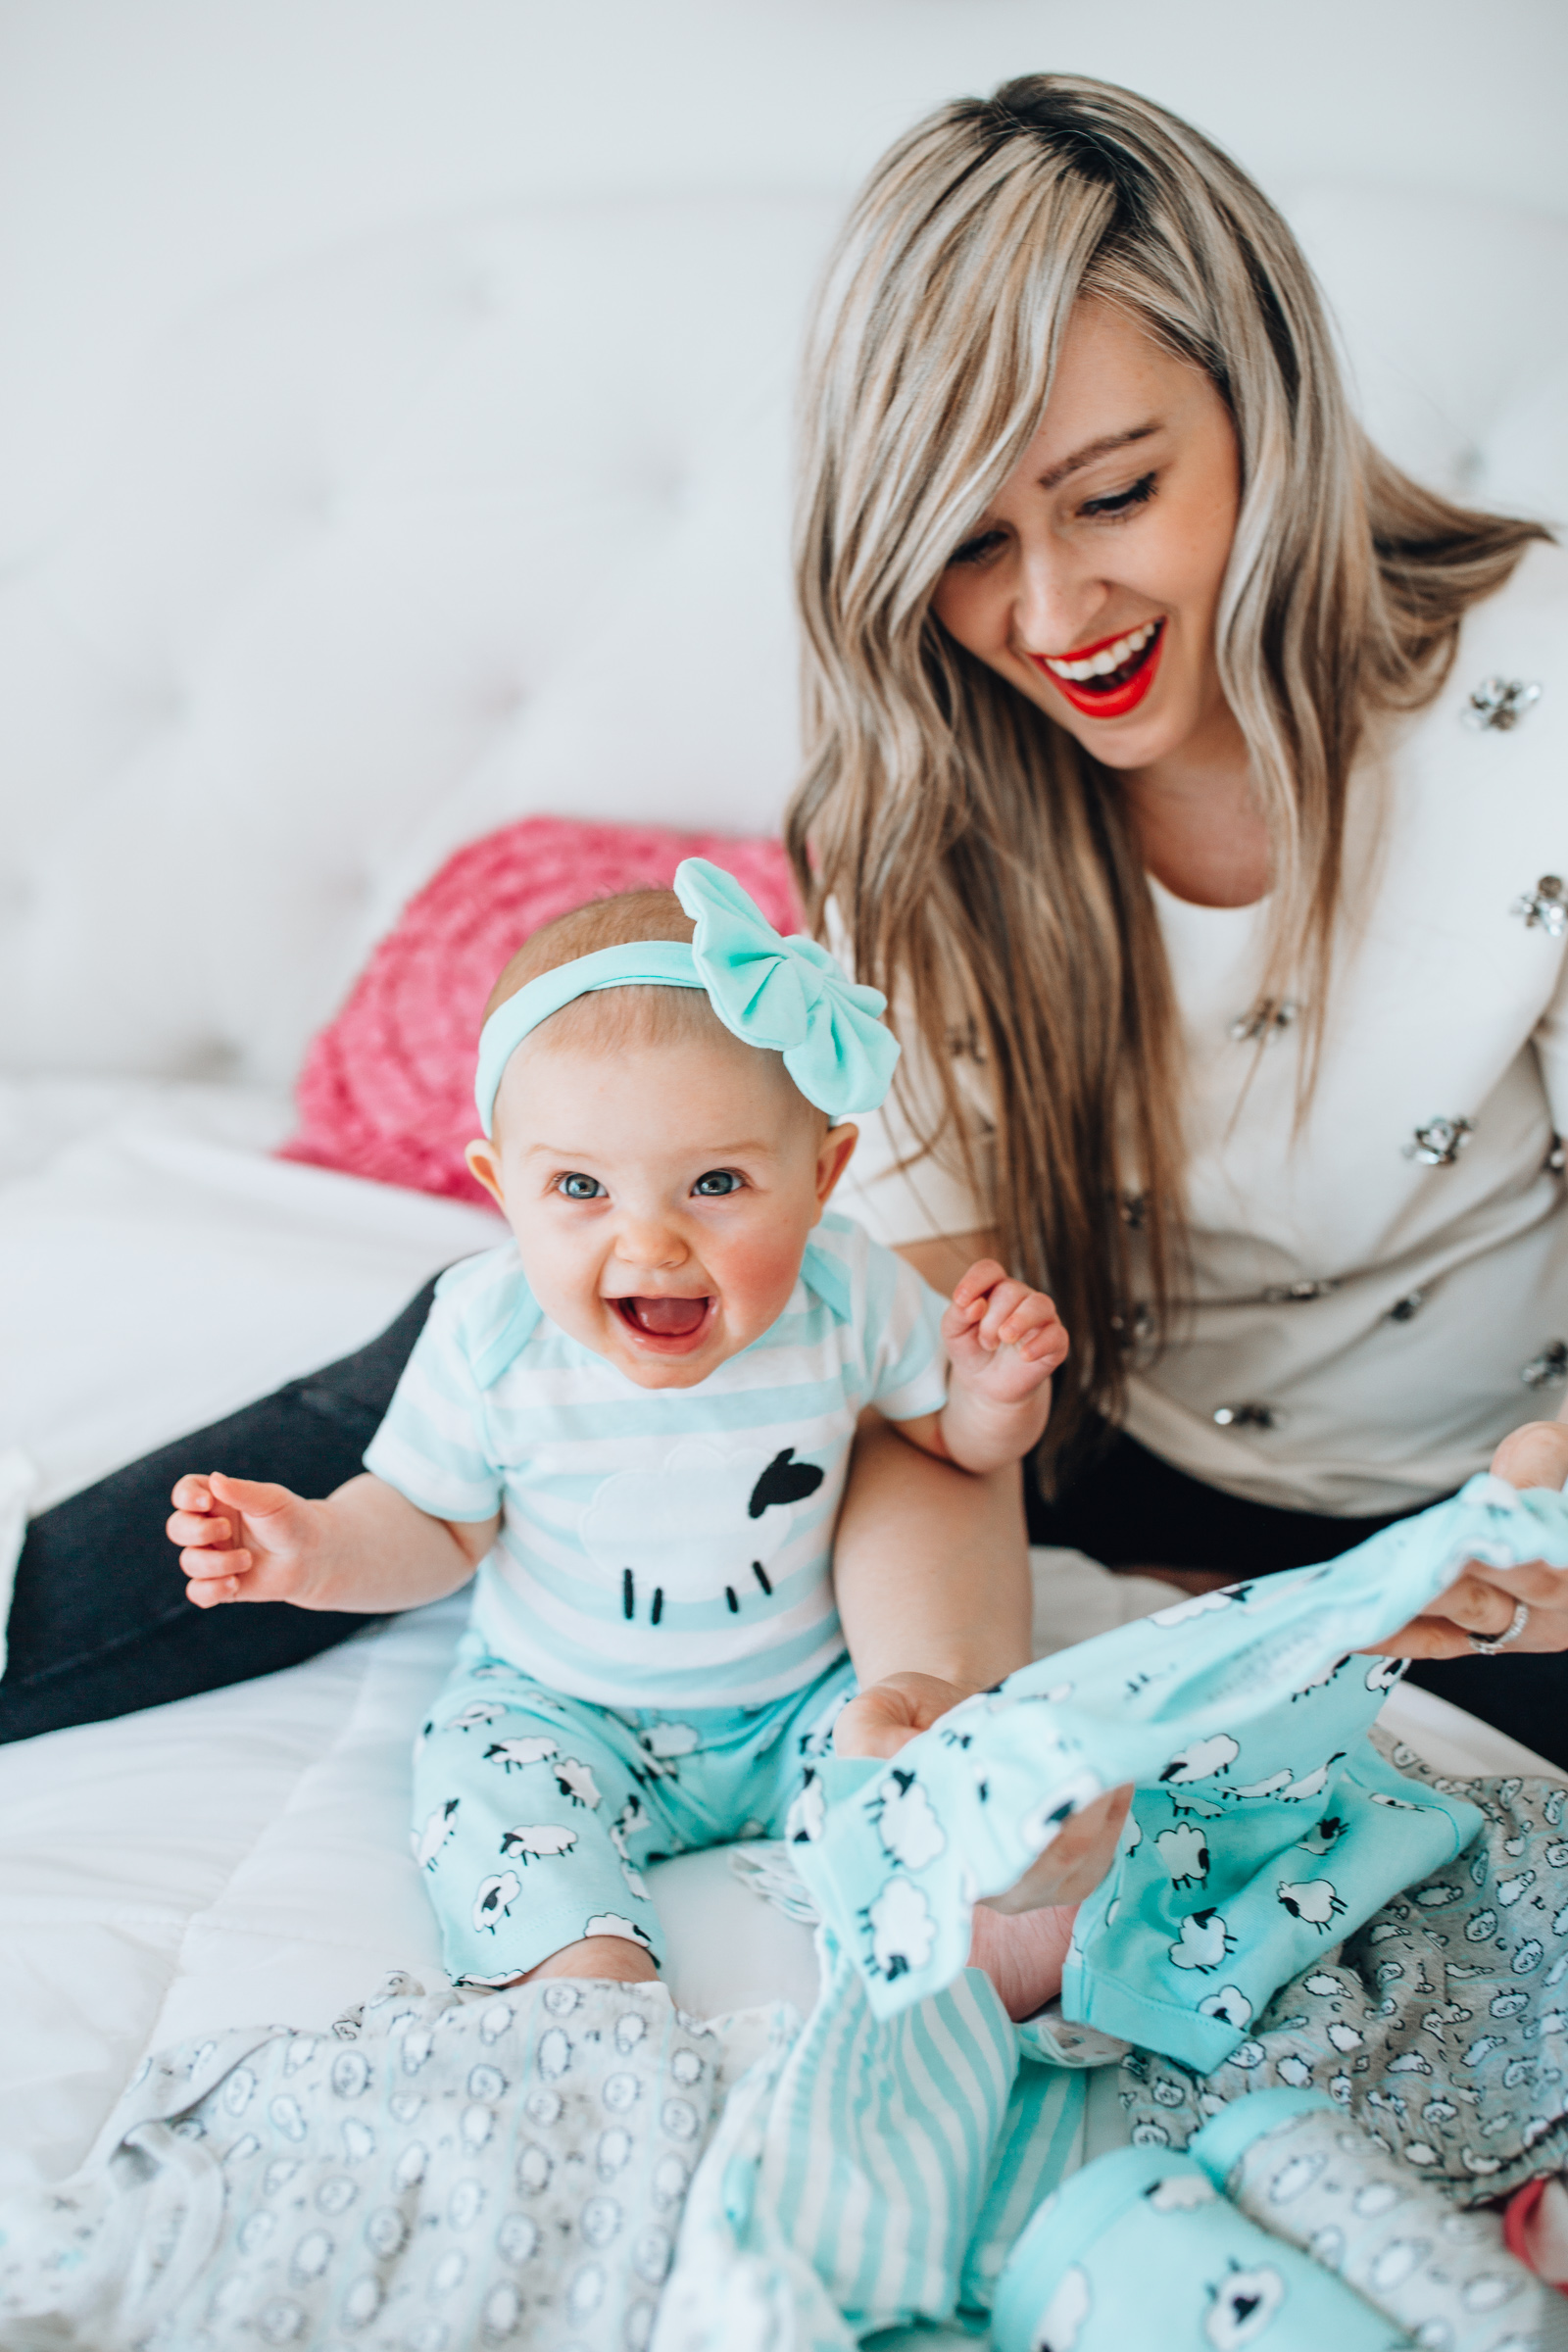 Chicago lifestyle blogger Happily Inspired shares tips about Road Trip With A Baby